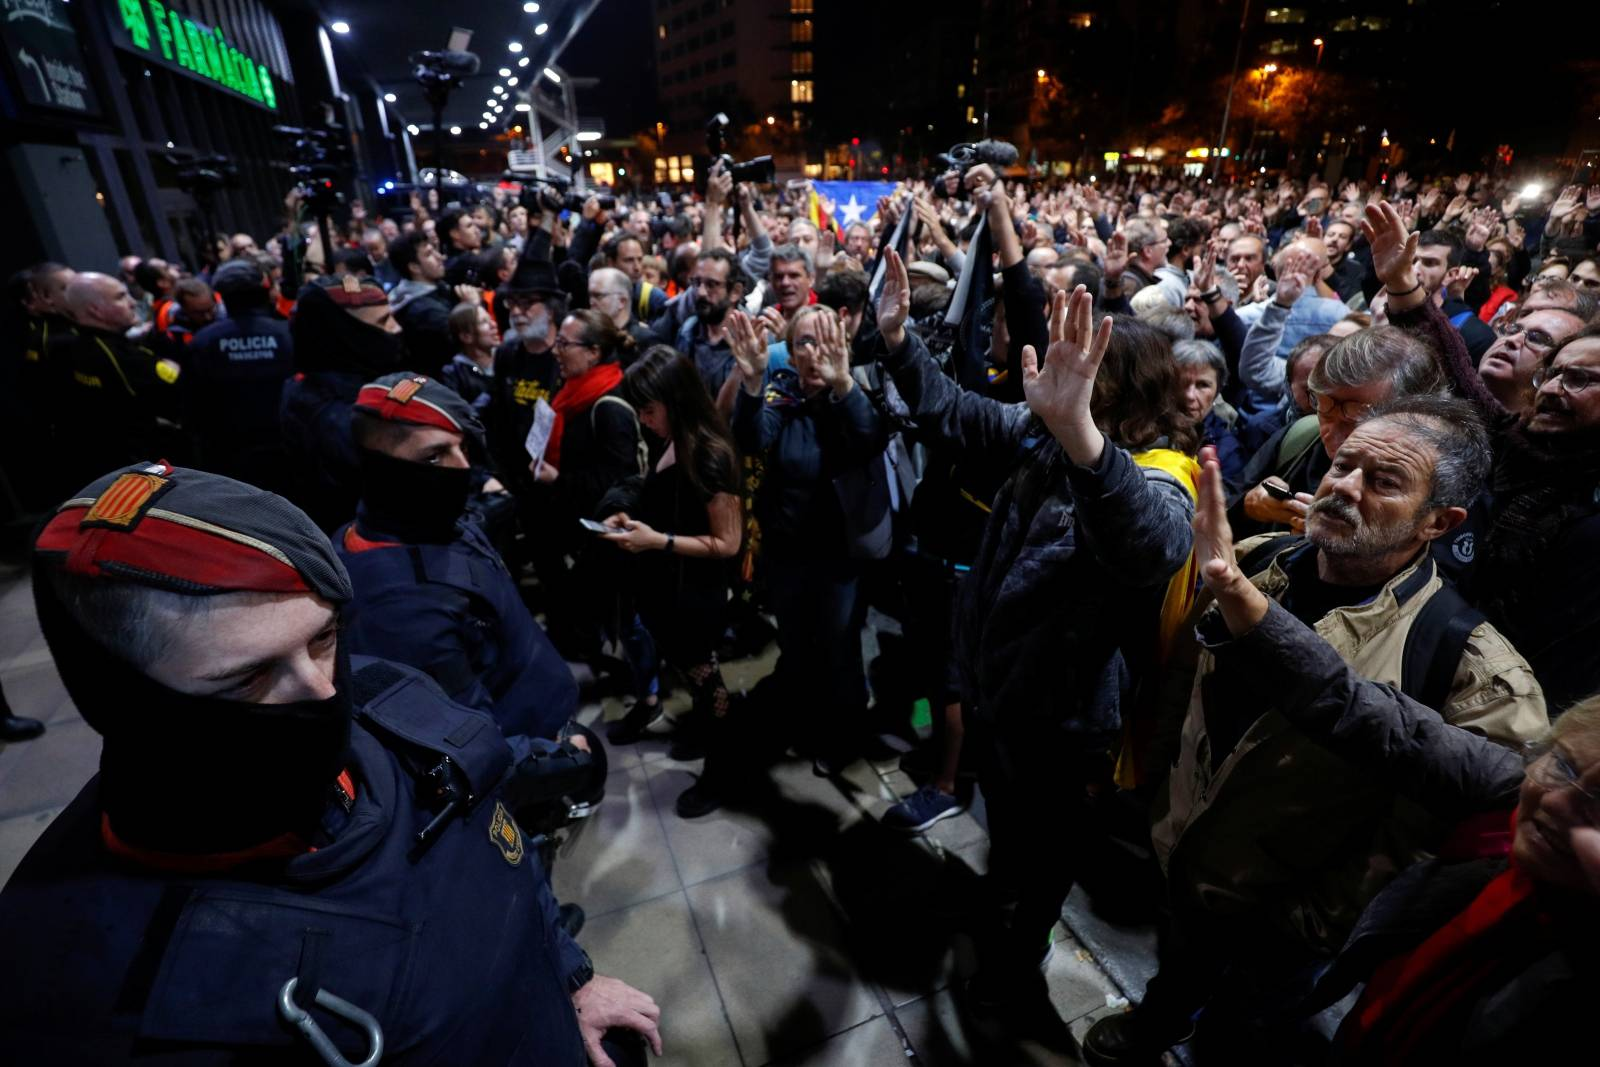 People participate in a protest as security forces stand guard outside the Sants train station in Barcelona